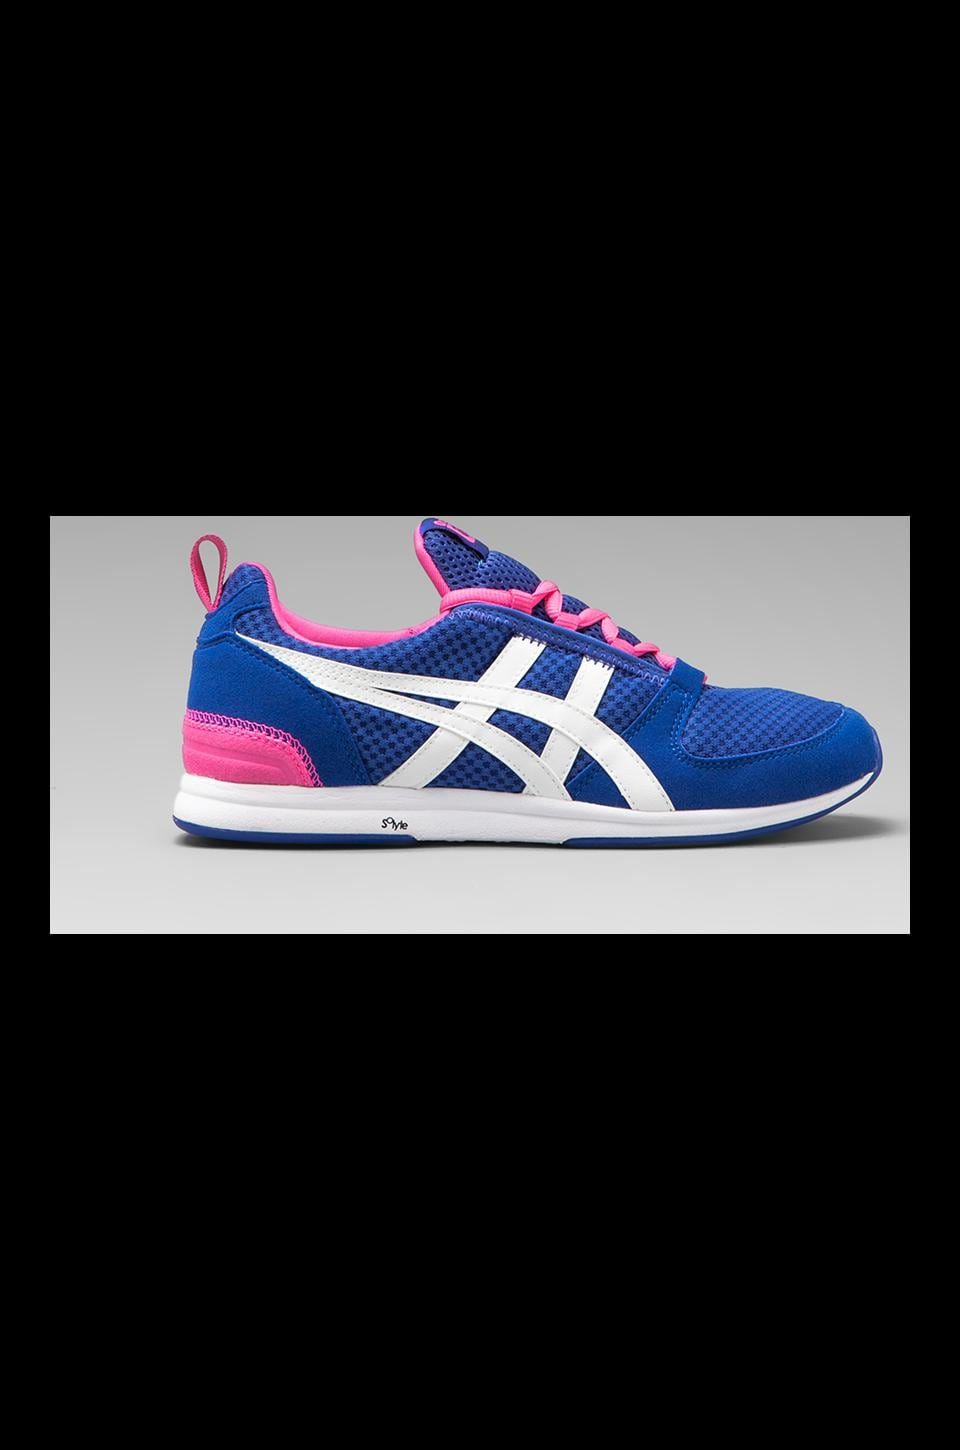 Onitsuka Tiger Ult-Racer in Blue/White